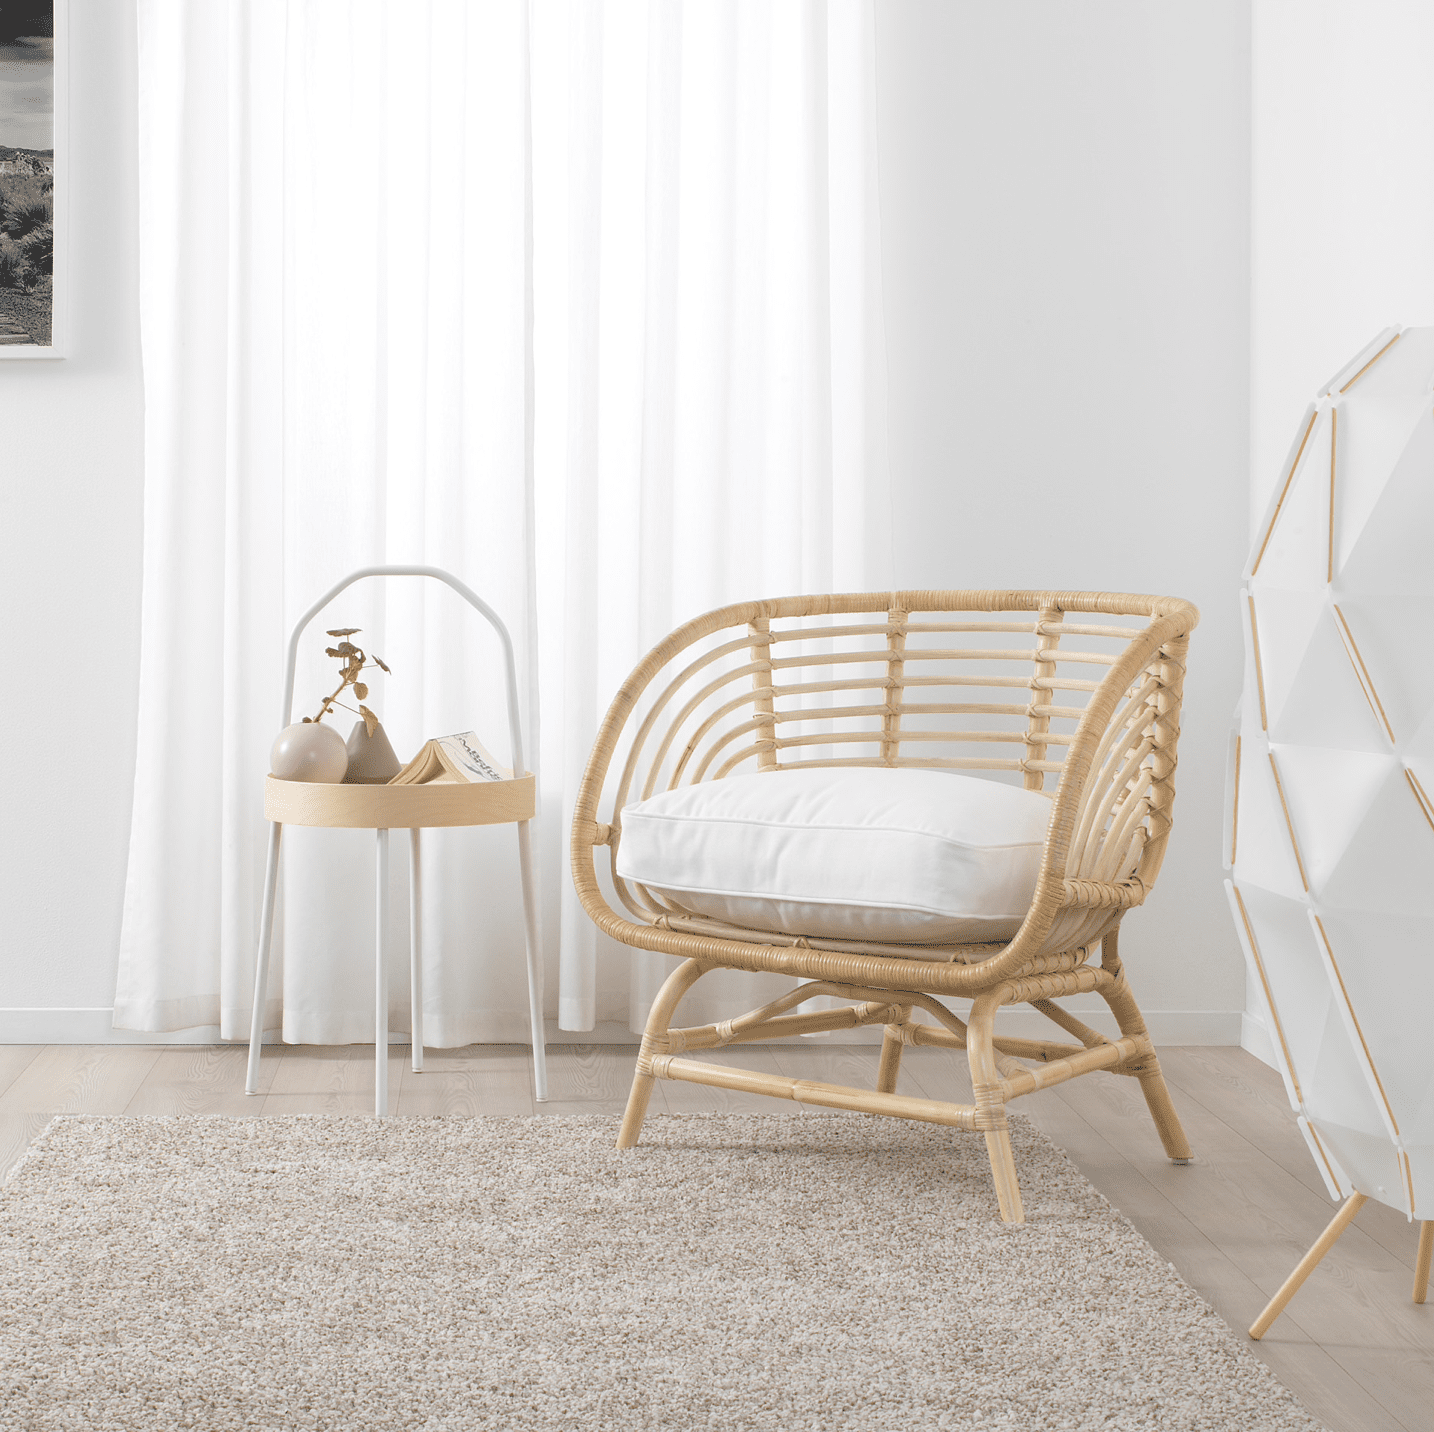 Peachy Best Rattan Products From Ikea Cheap Rattan Ikea Finds Gmtry Best Dining Table And Chair Ideas Images Gmtryco